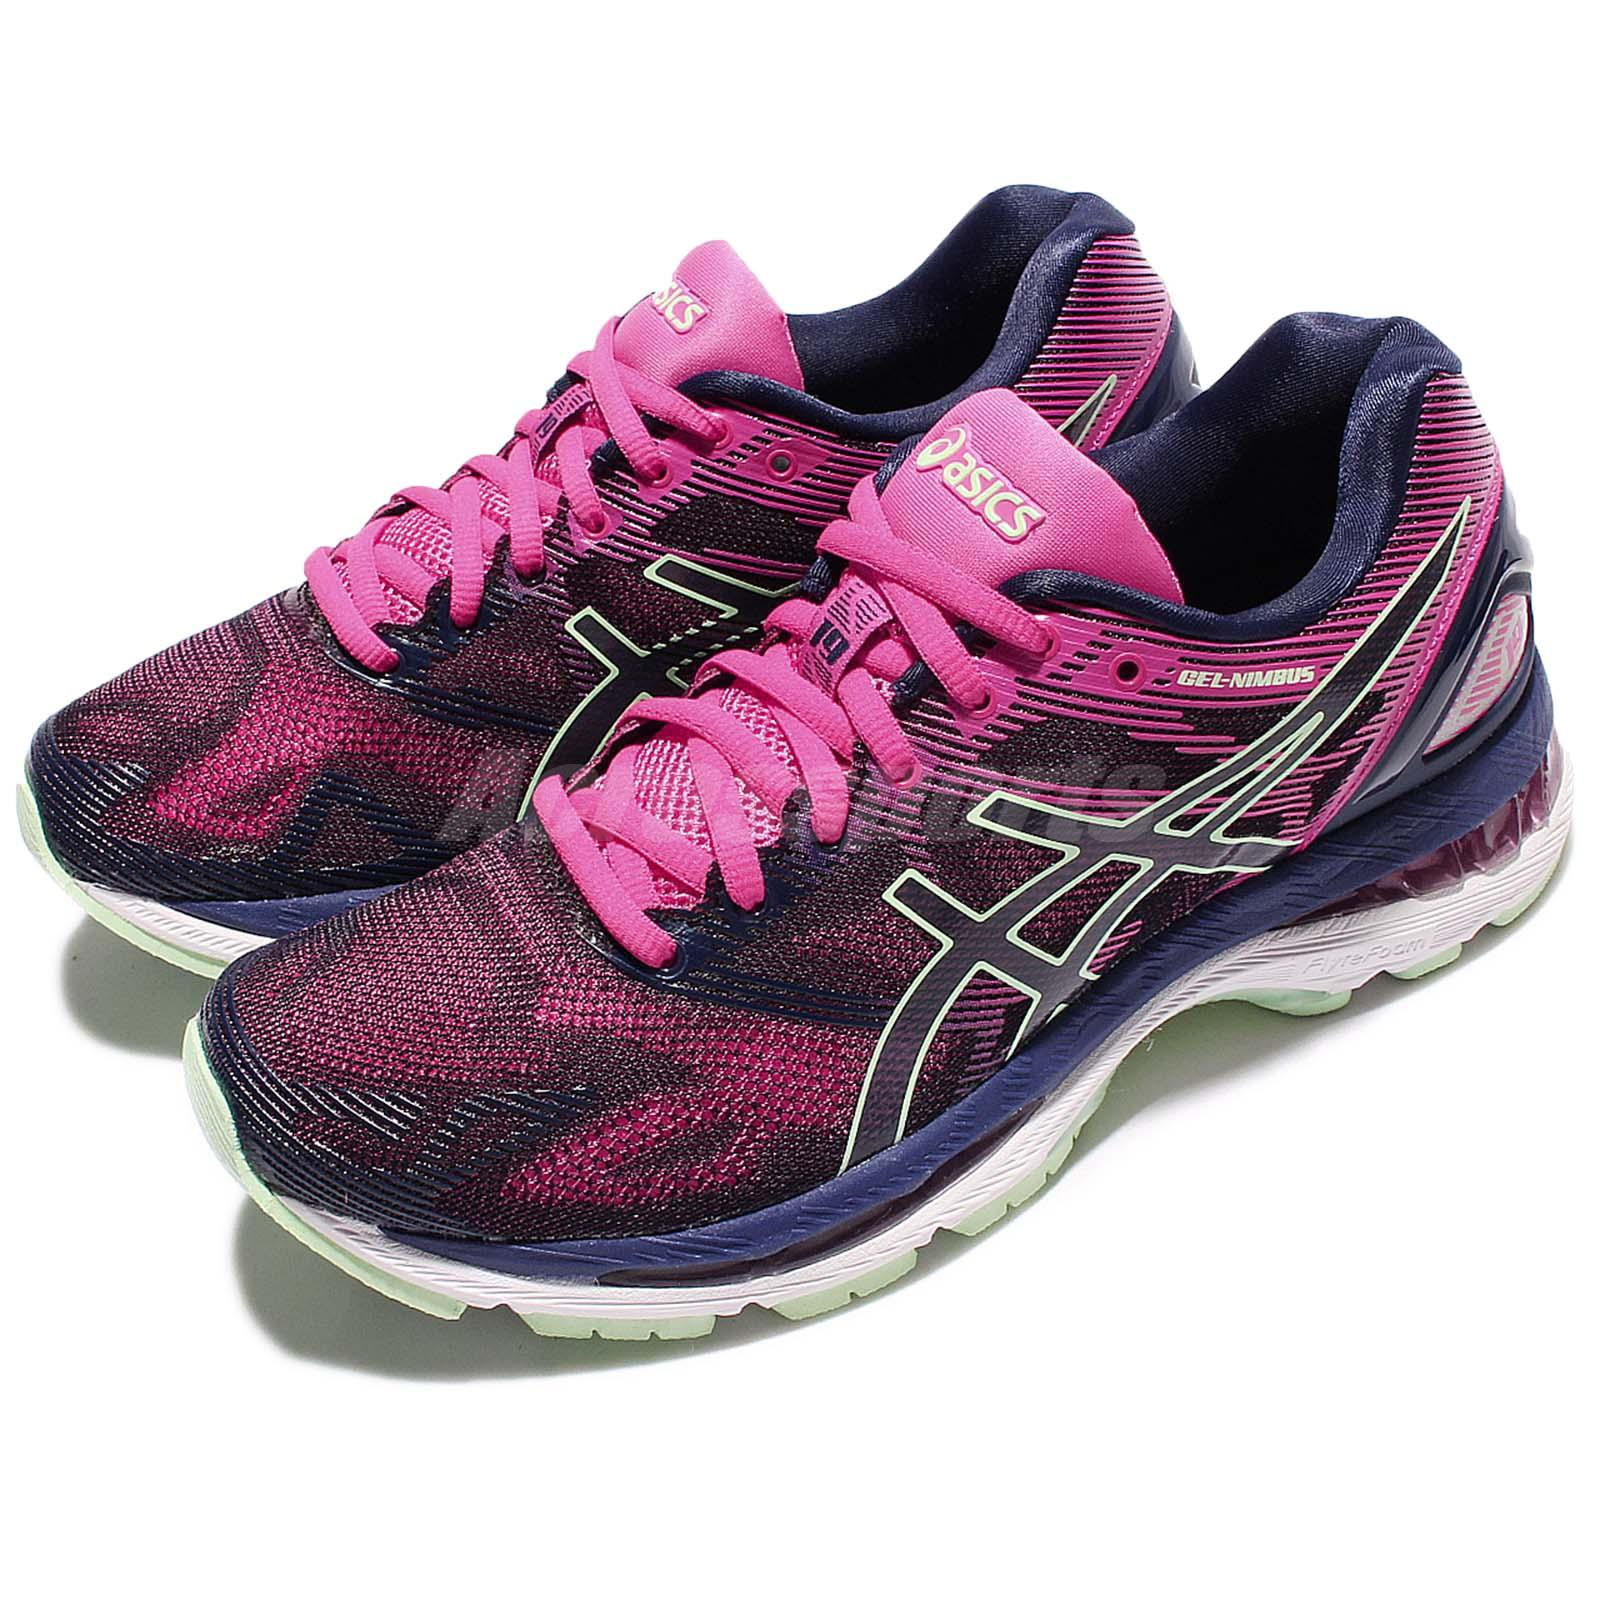 differently 3cb9d 85a73 Details about Asics Gel-Nimbus 19 Pink Navy Women Running Training Shoes  Sneakers T750N-4987